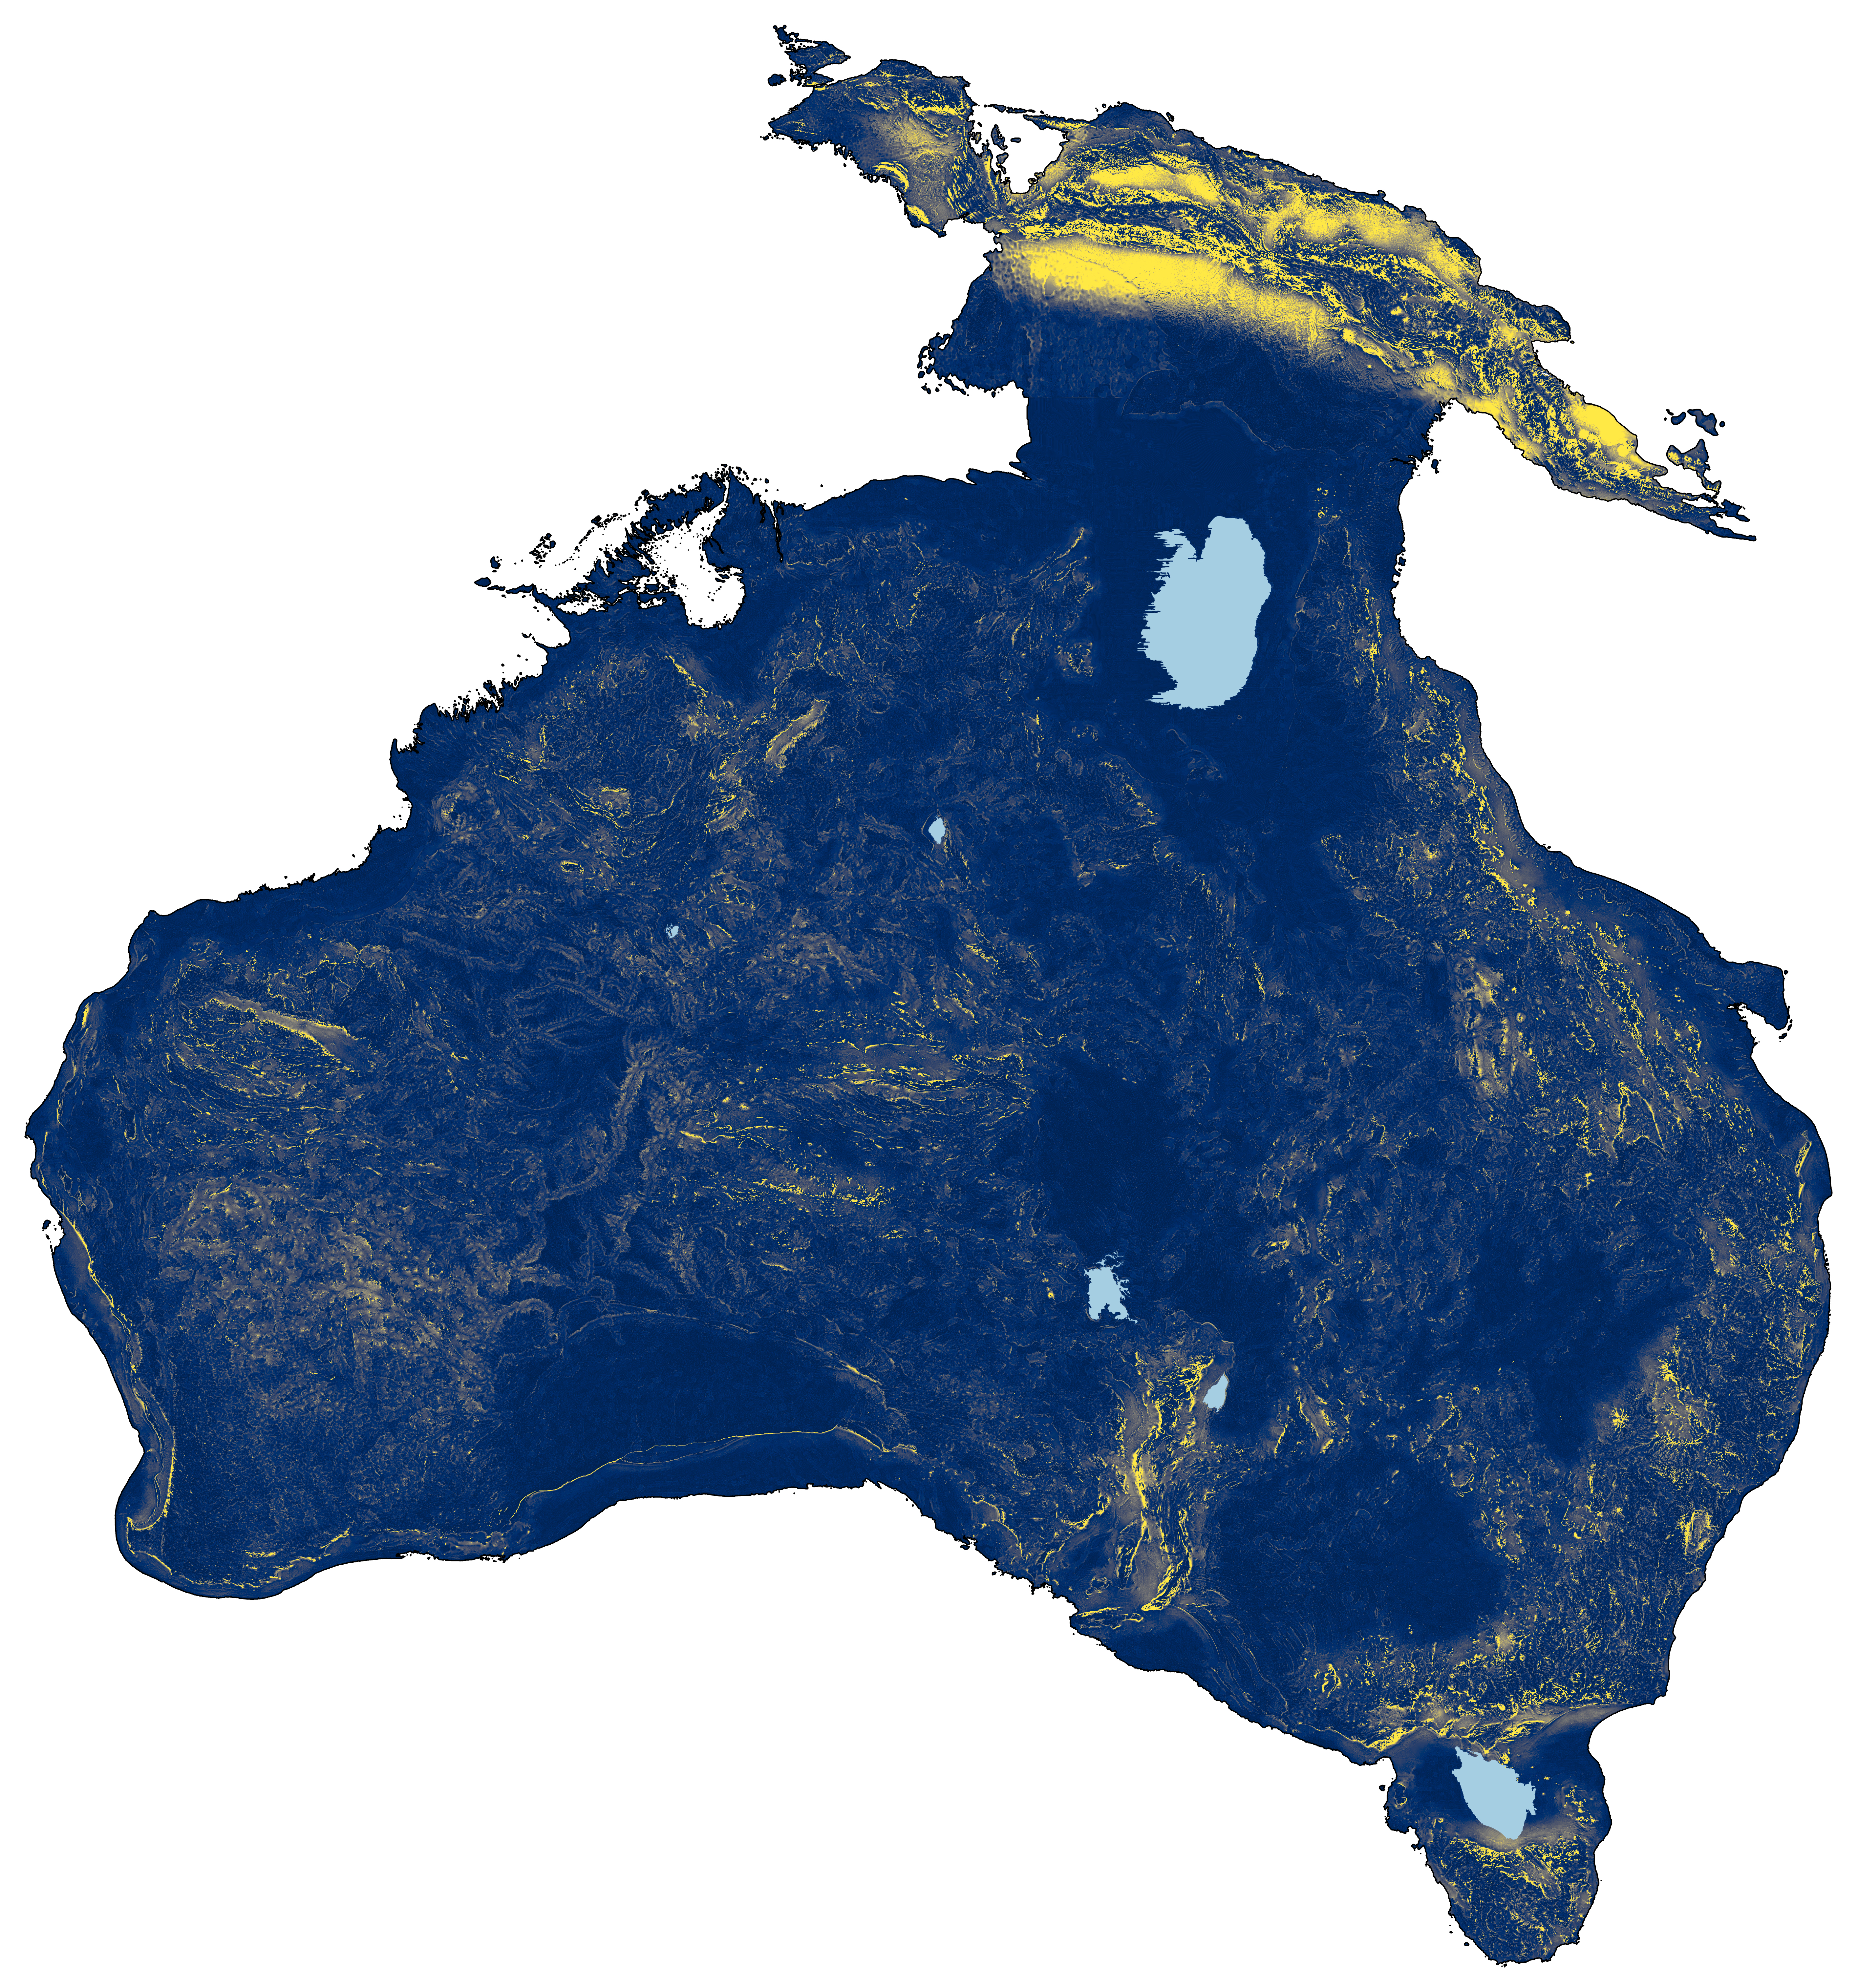 A map showing the landmass of Australia connected to New Guinea and Tasmania